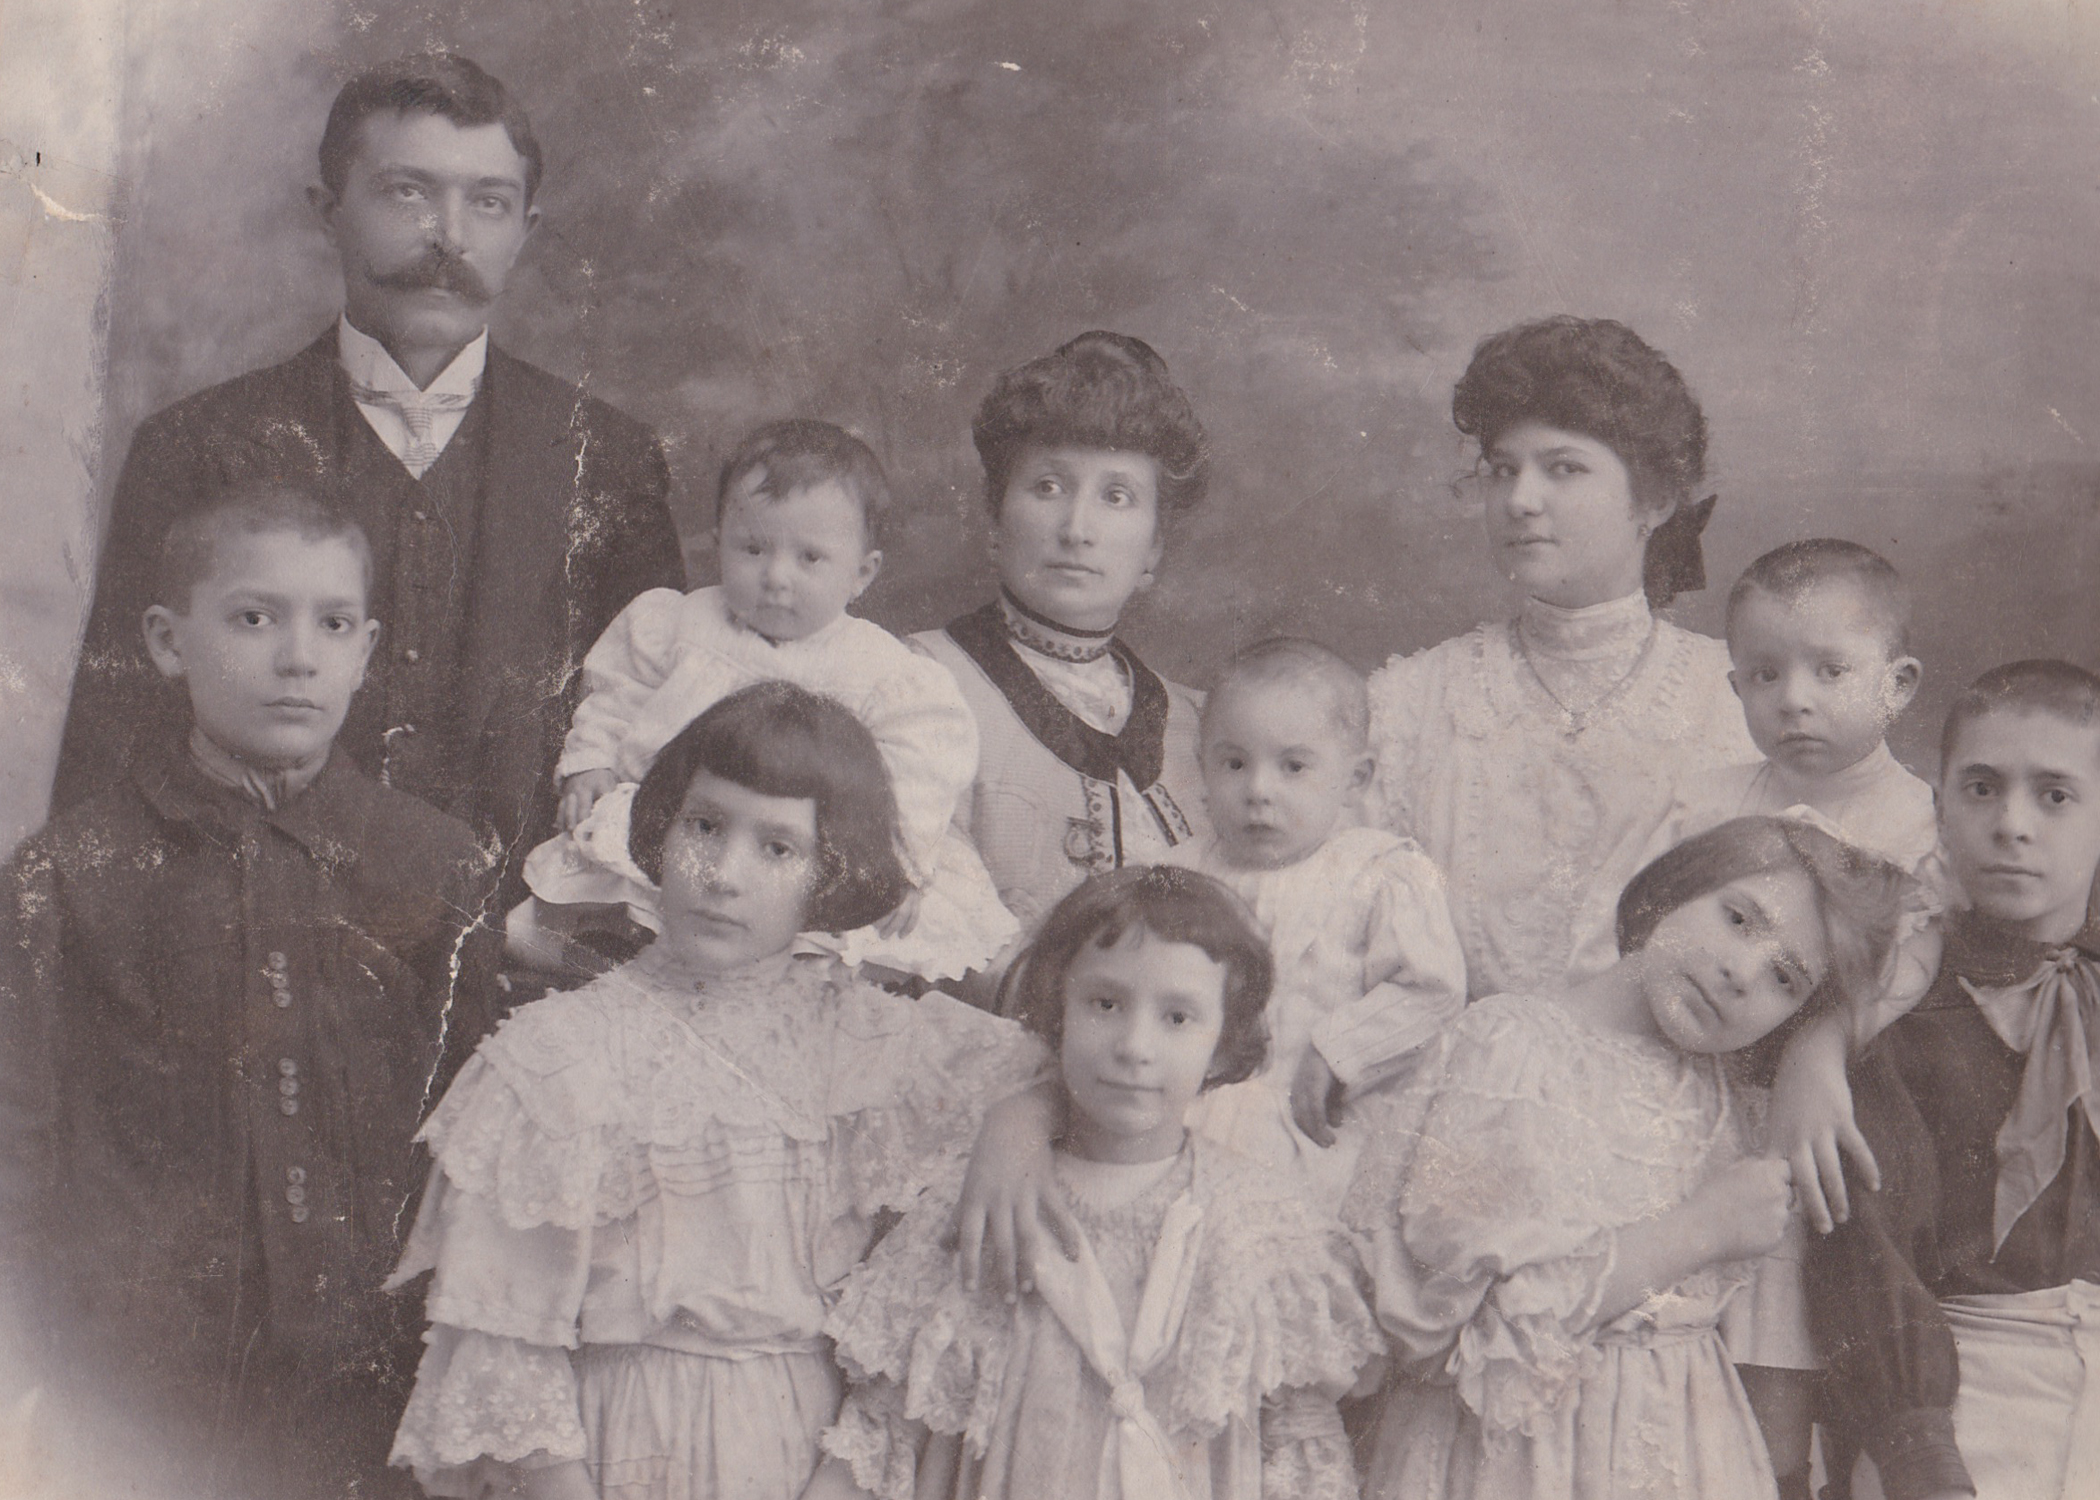 My great-grandmother Tina (front, bottom center) with her siblings and parents.